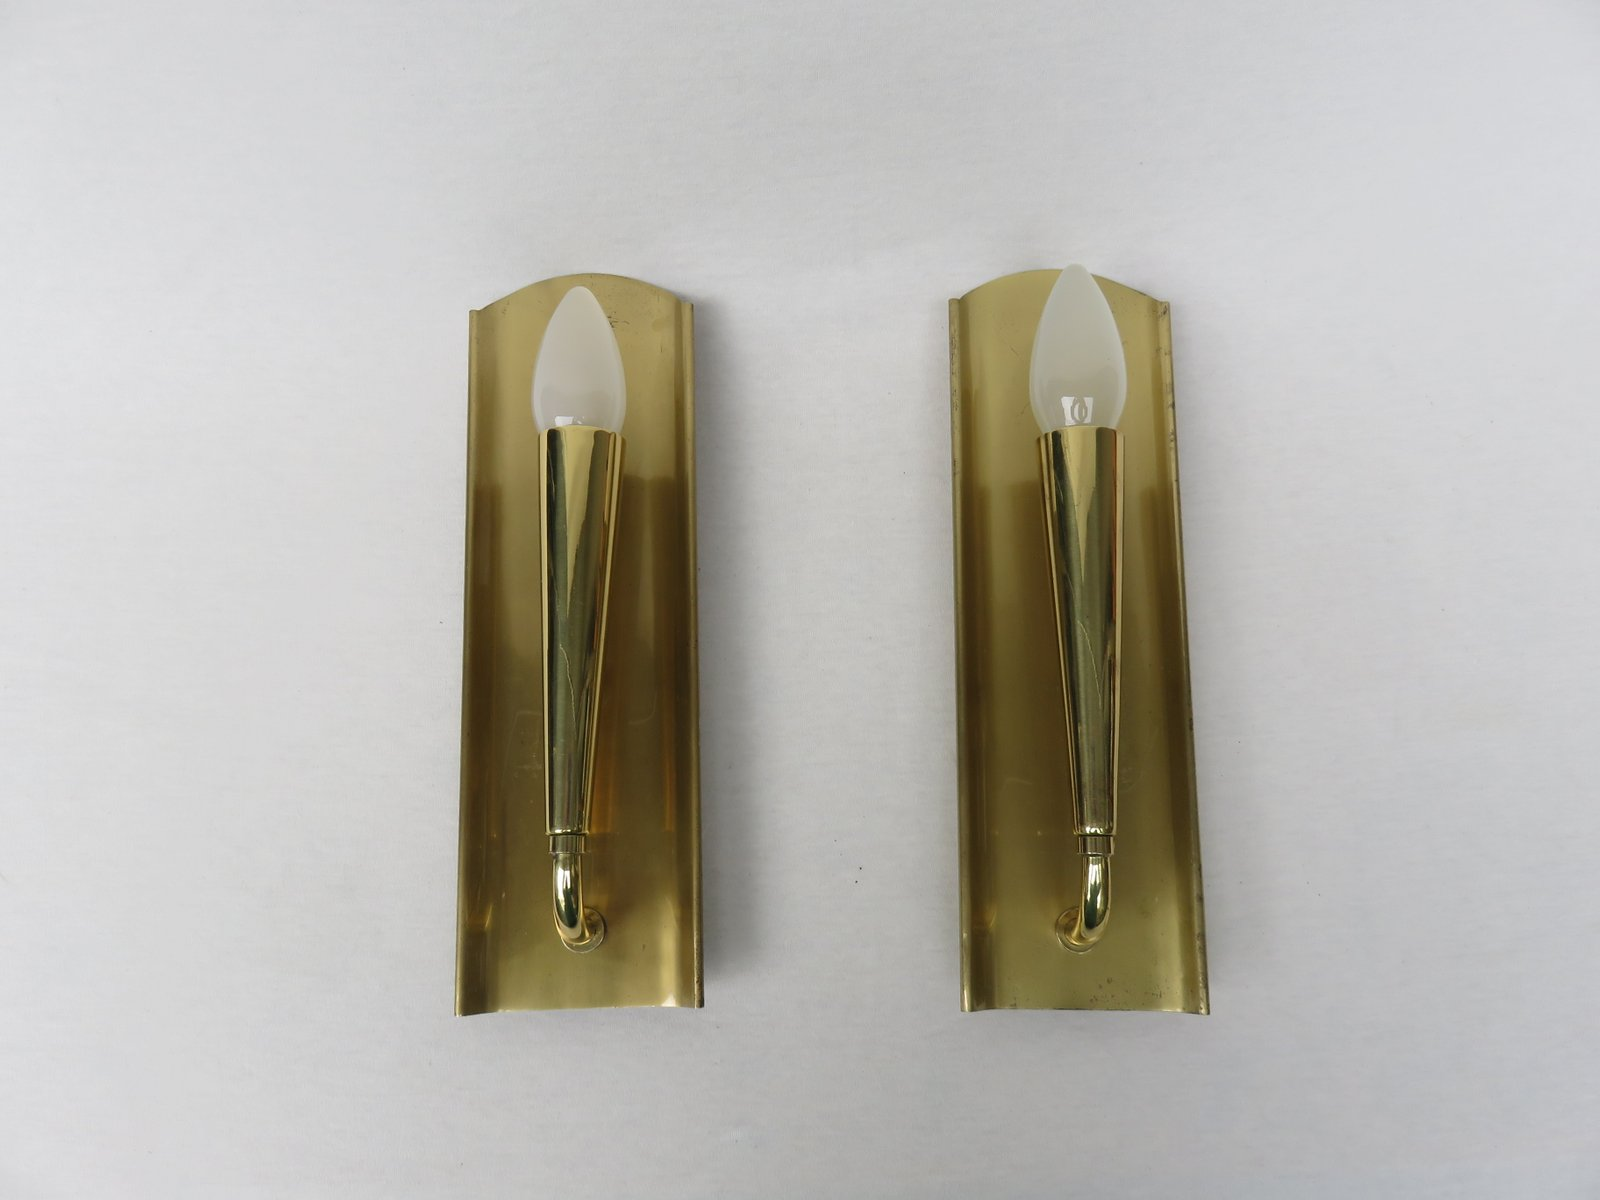 Polished & Matte Brushed Brass Wall Lights, 1950s, Set of 2 for sale at Pamono